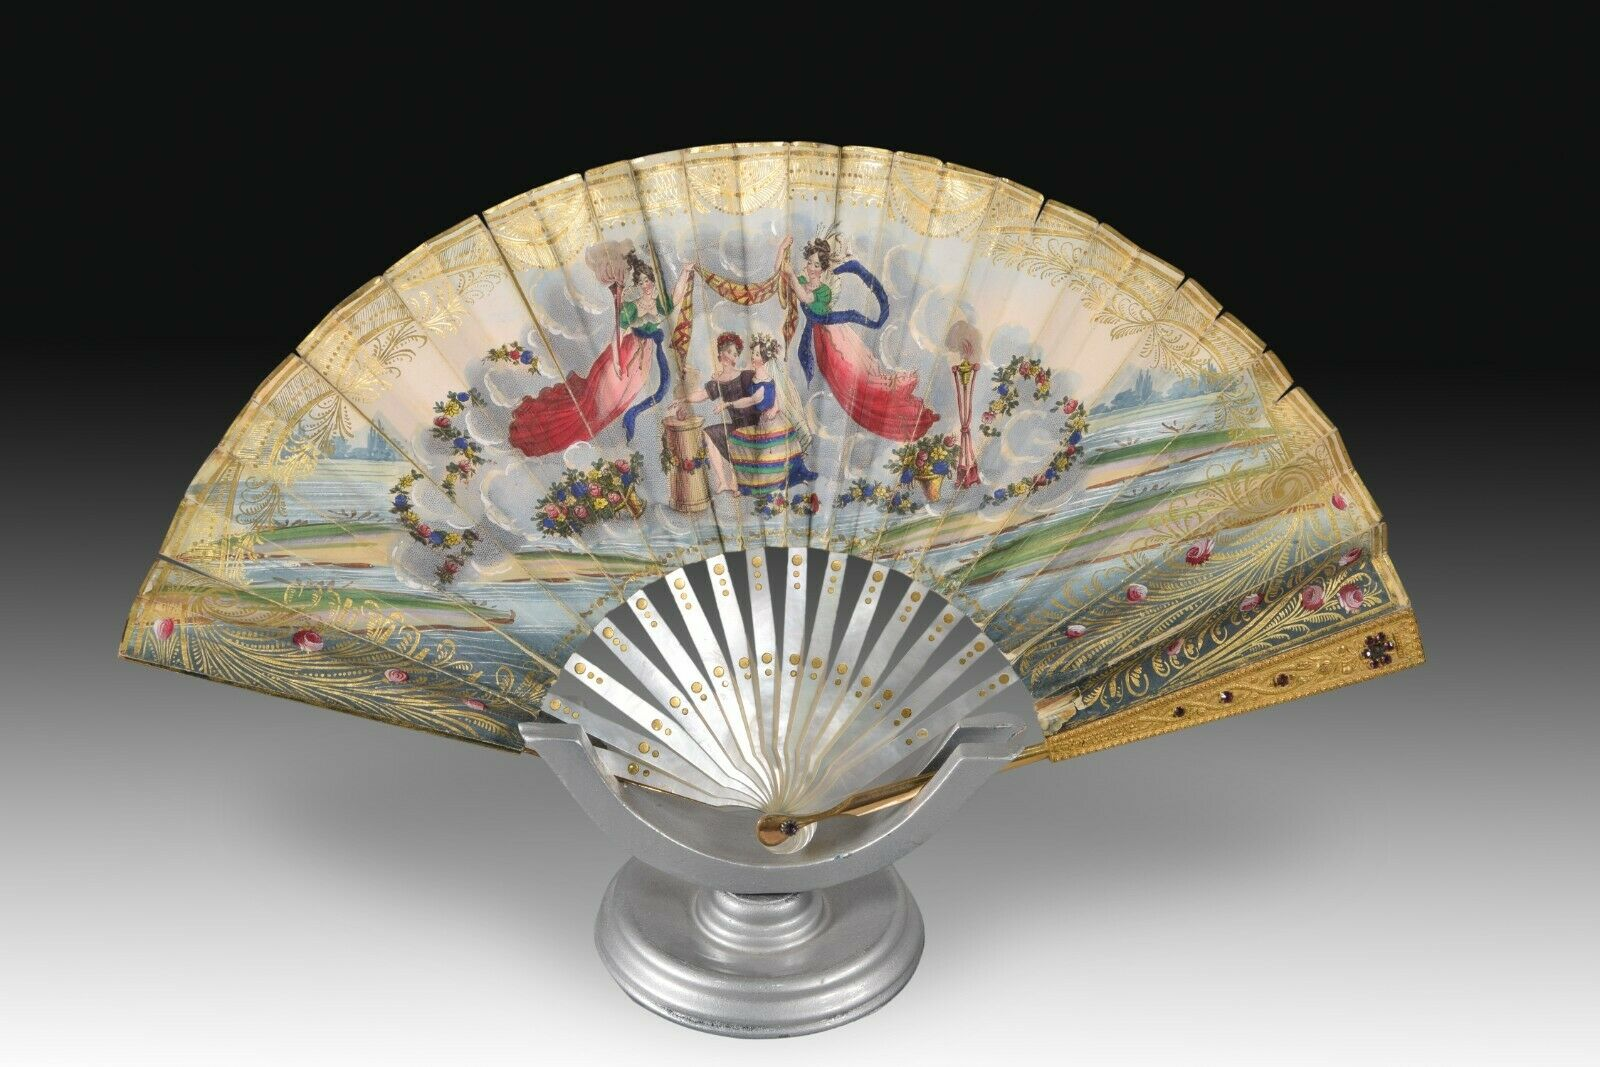 Hand fan. Paper, mother of pearl. 18th-19th centuries.